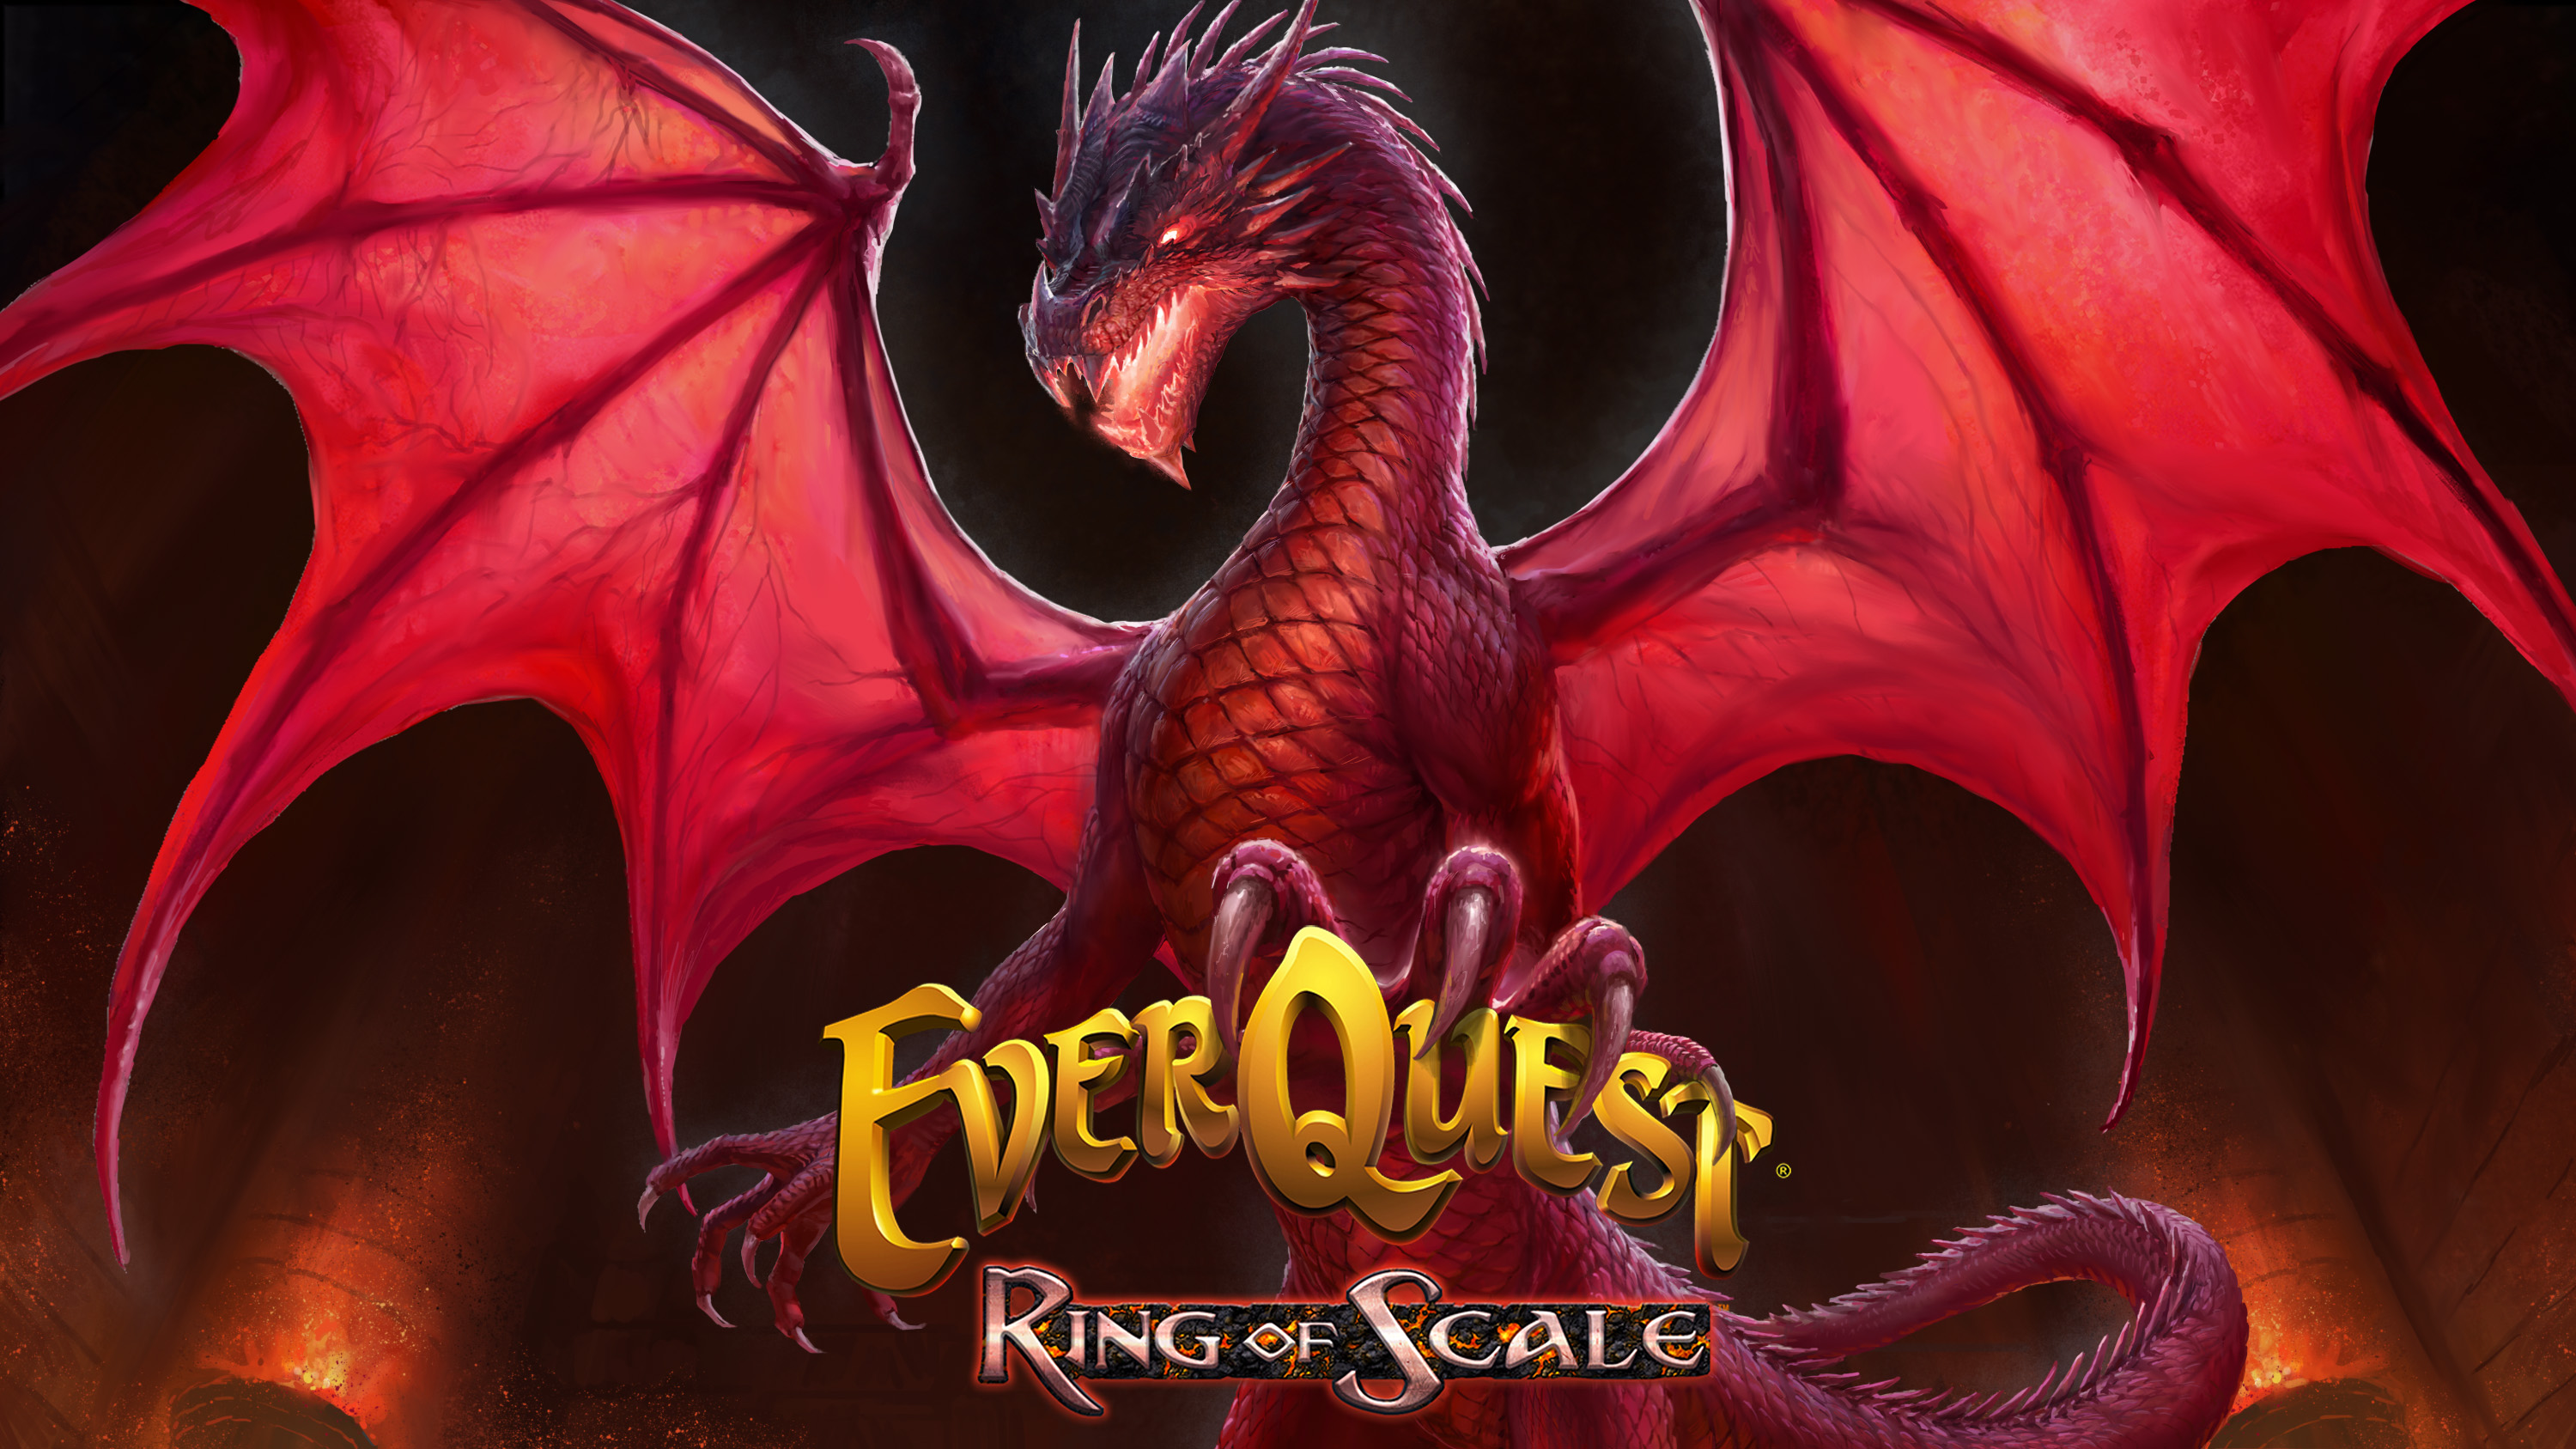 Ring of Scale is Now Available for 50% Off! | EverQuest